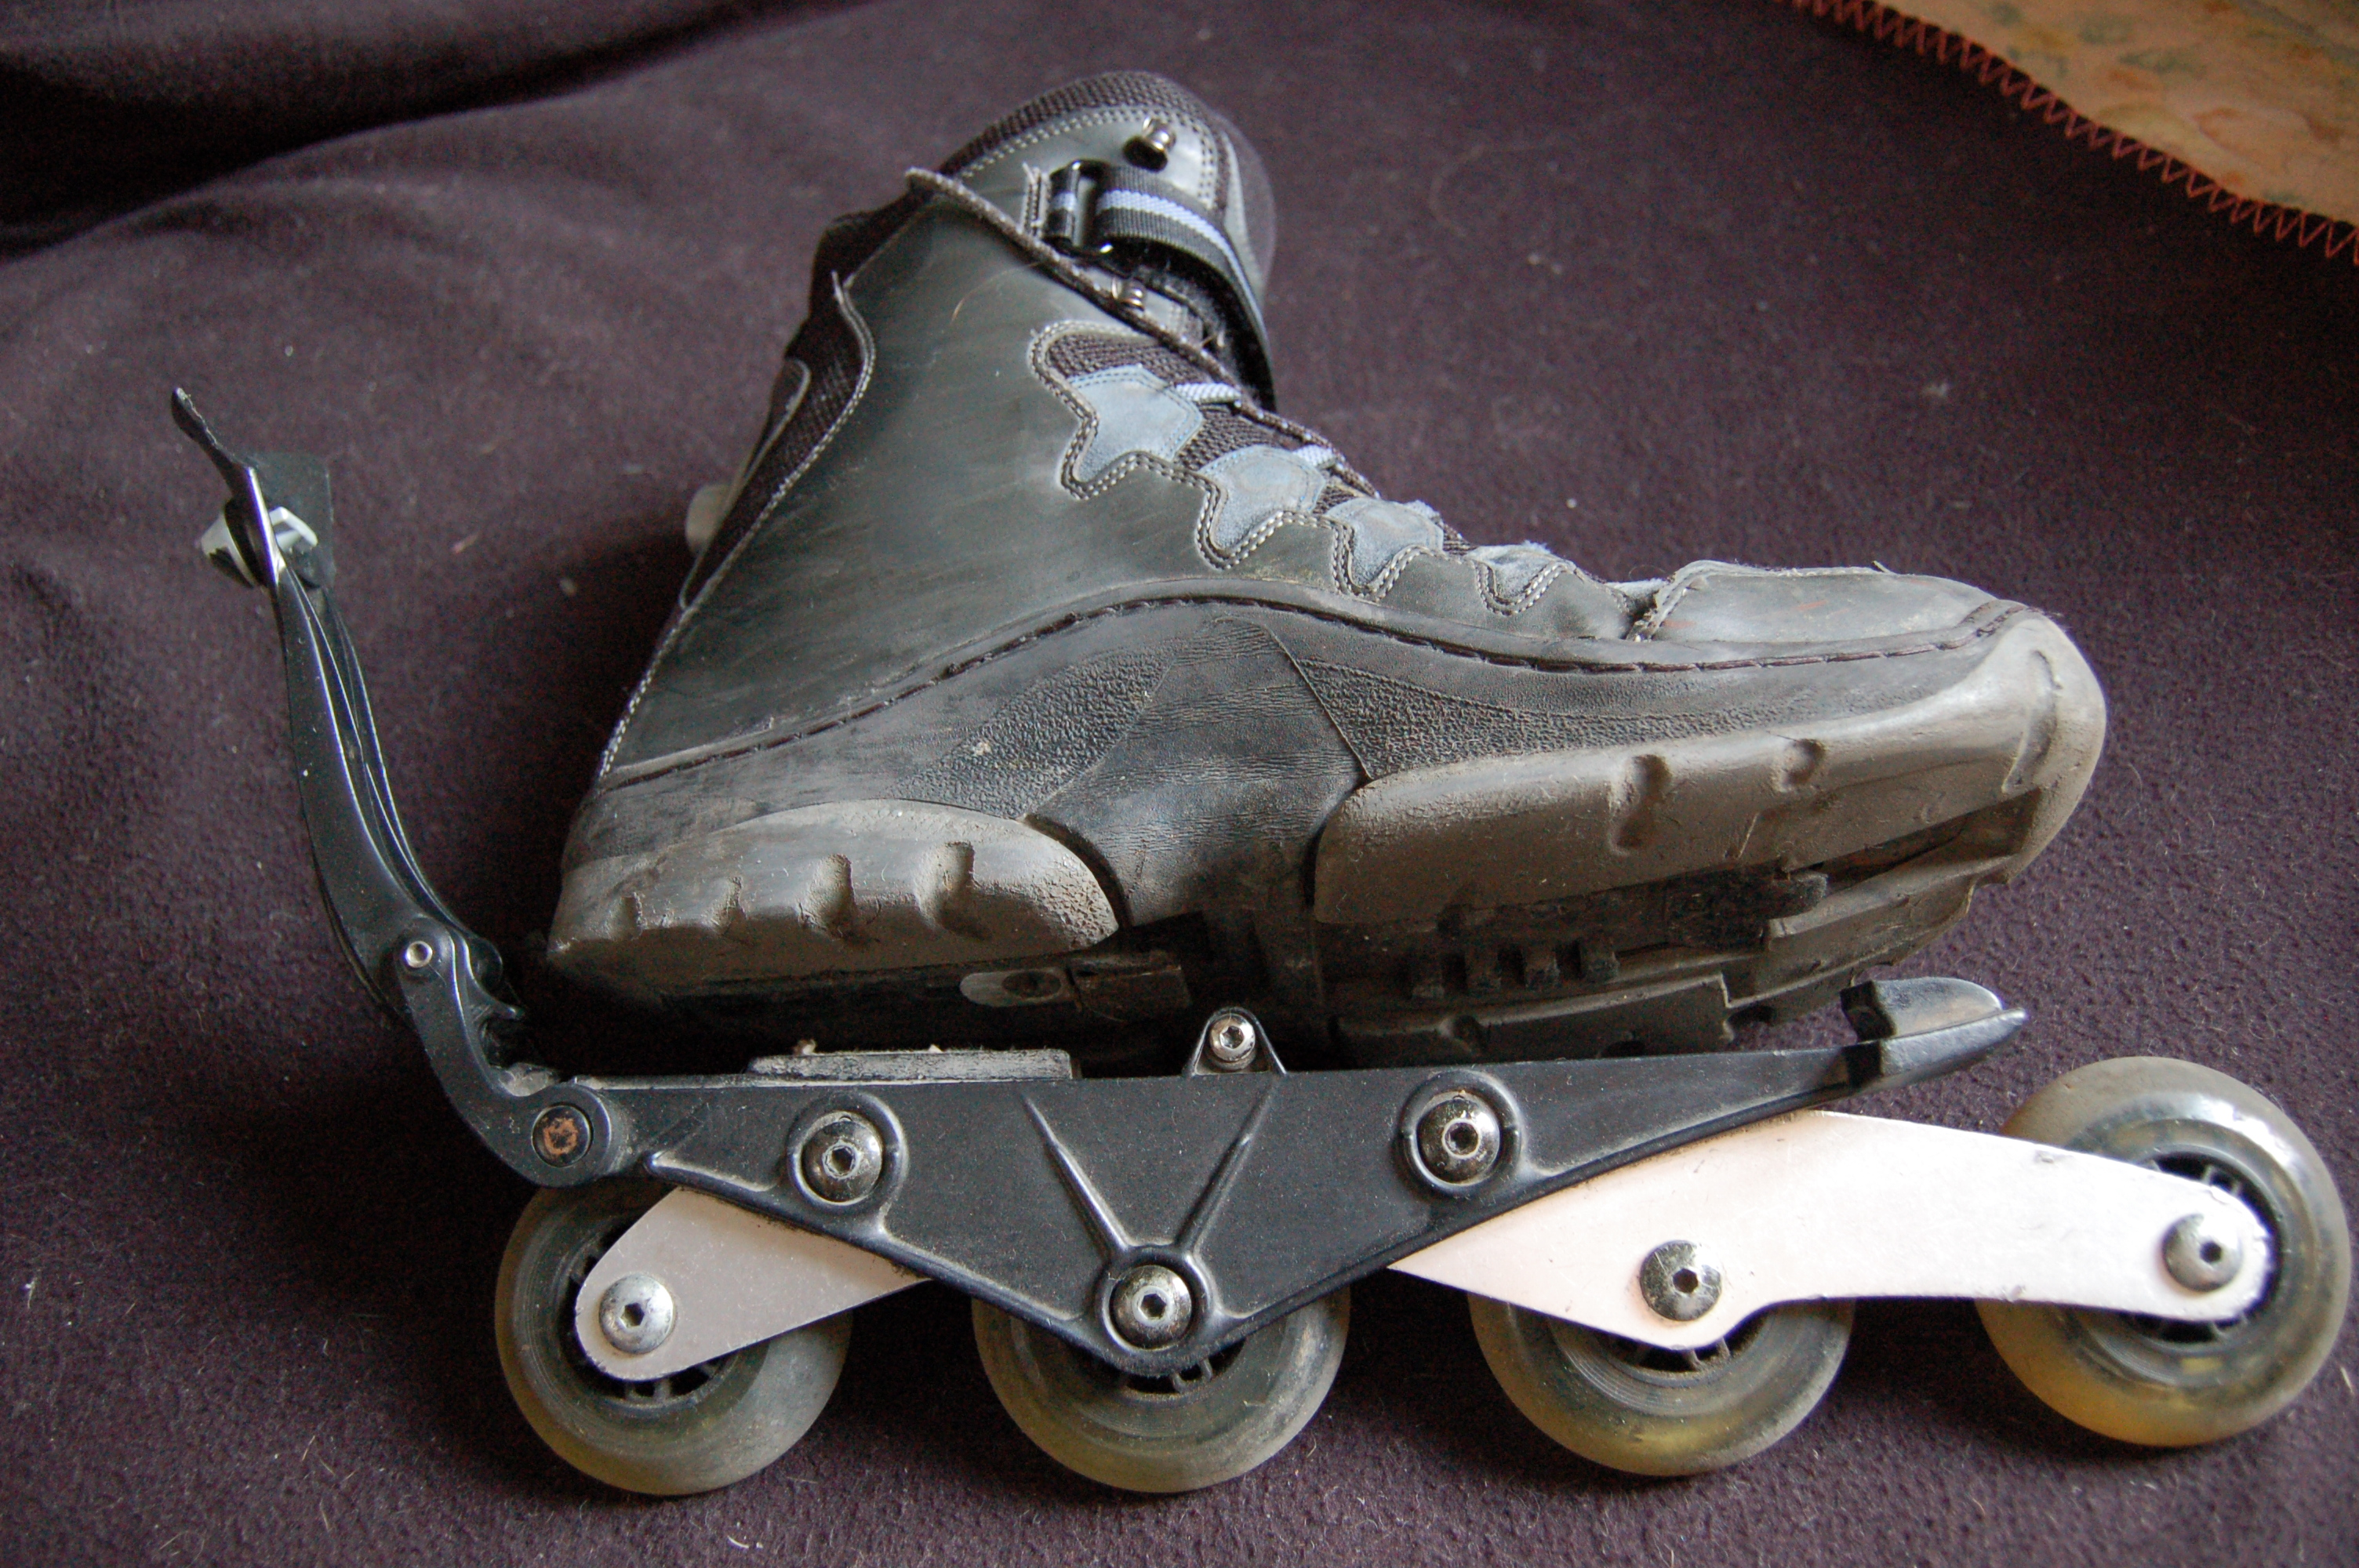 http://upload.wikimedia.org/wikipedia/commons/c/cc/Roller_chaussure.JPG